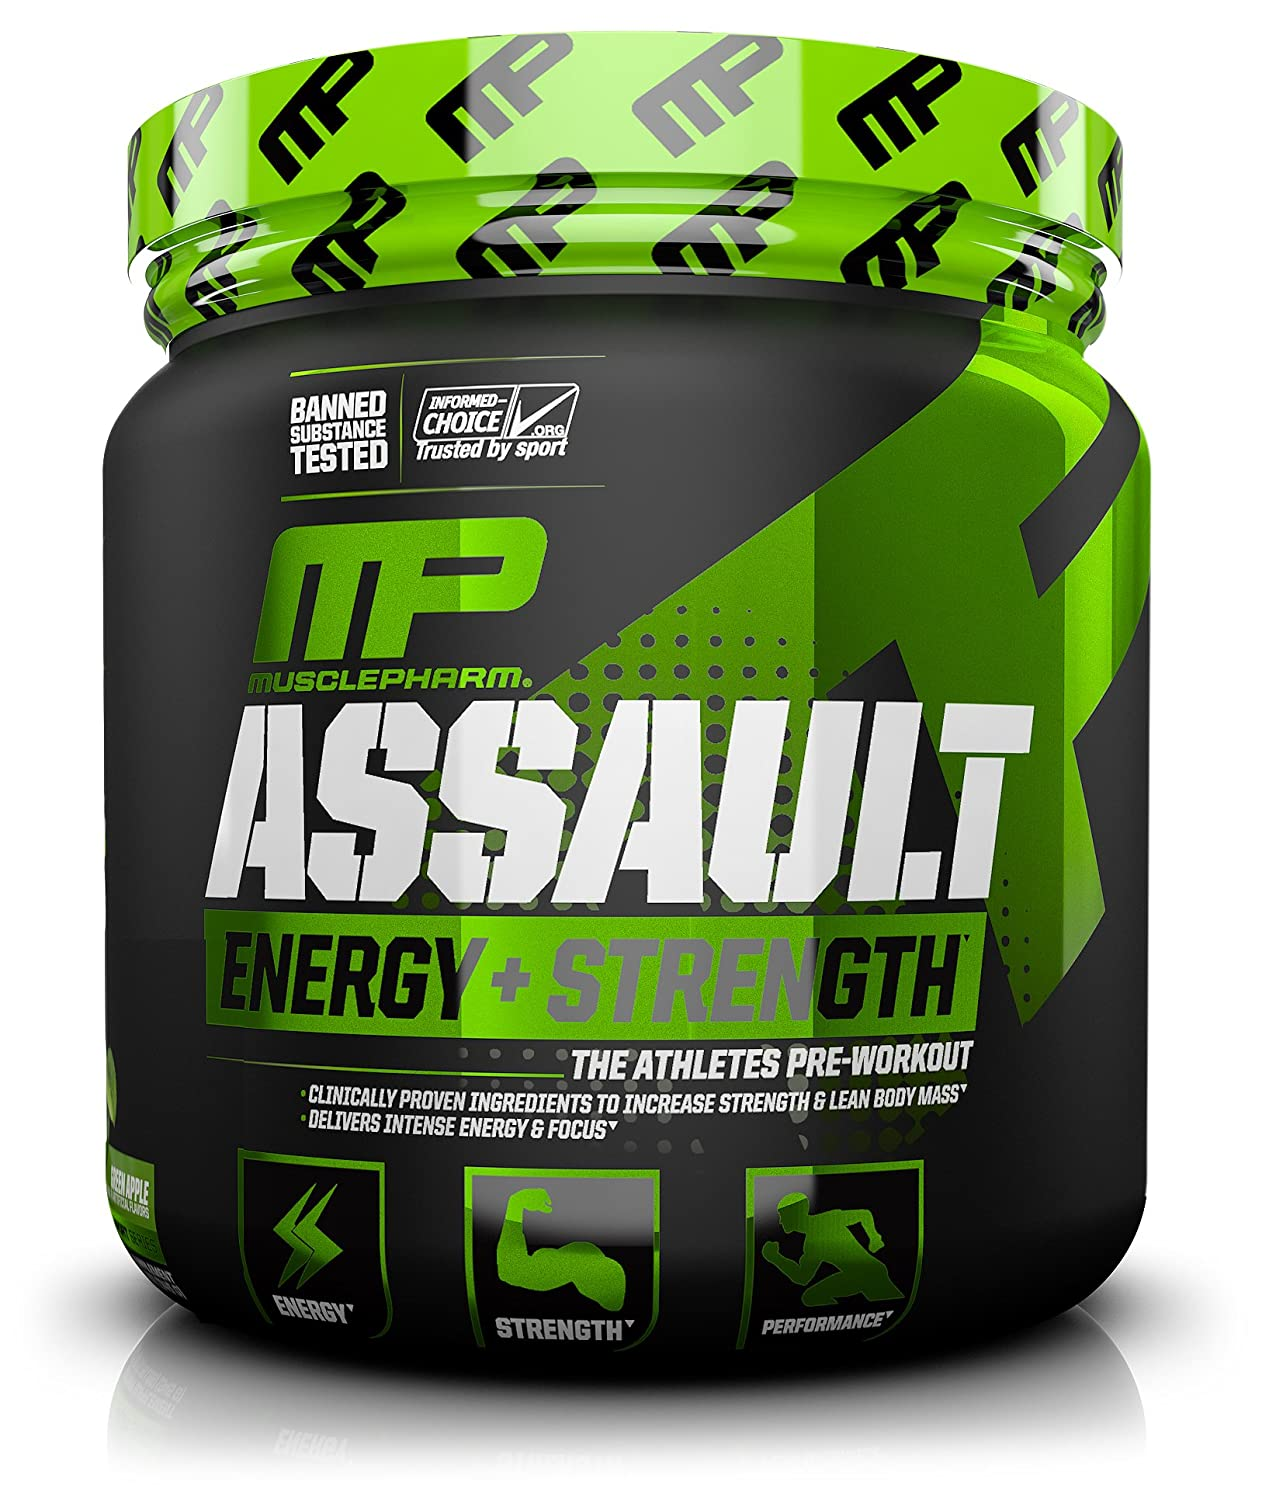 MusclePharm Assault Sport Pre-Workout Powder with High Dose Energy, Focus, Strength and Endurance - Creatine, Taurine and Caffeine, Green Apple, 30 Servings